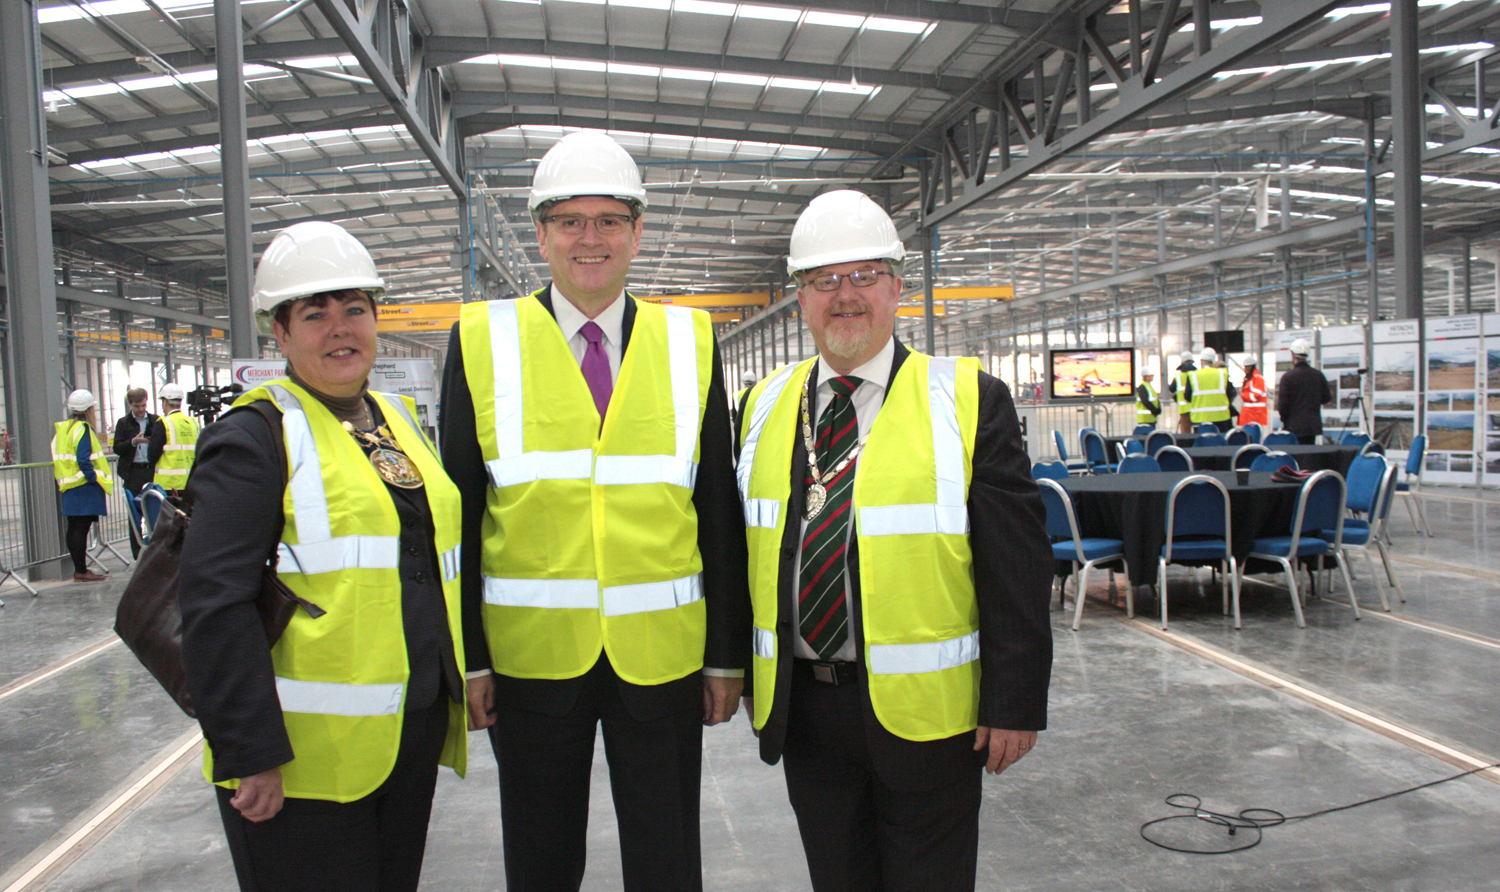 Hitachi Train Factory Ready for Internal Fitting Out Announcement of UK Design Office for Aycliffe